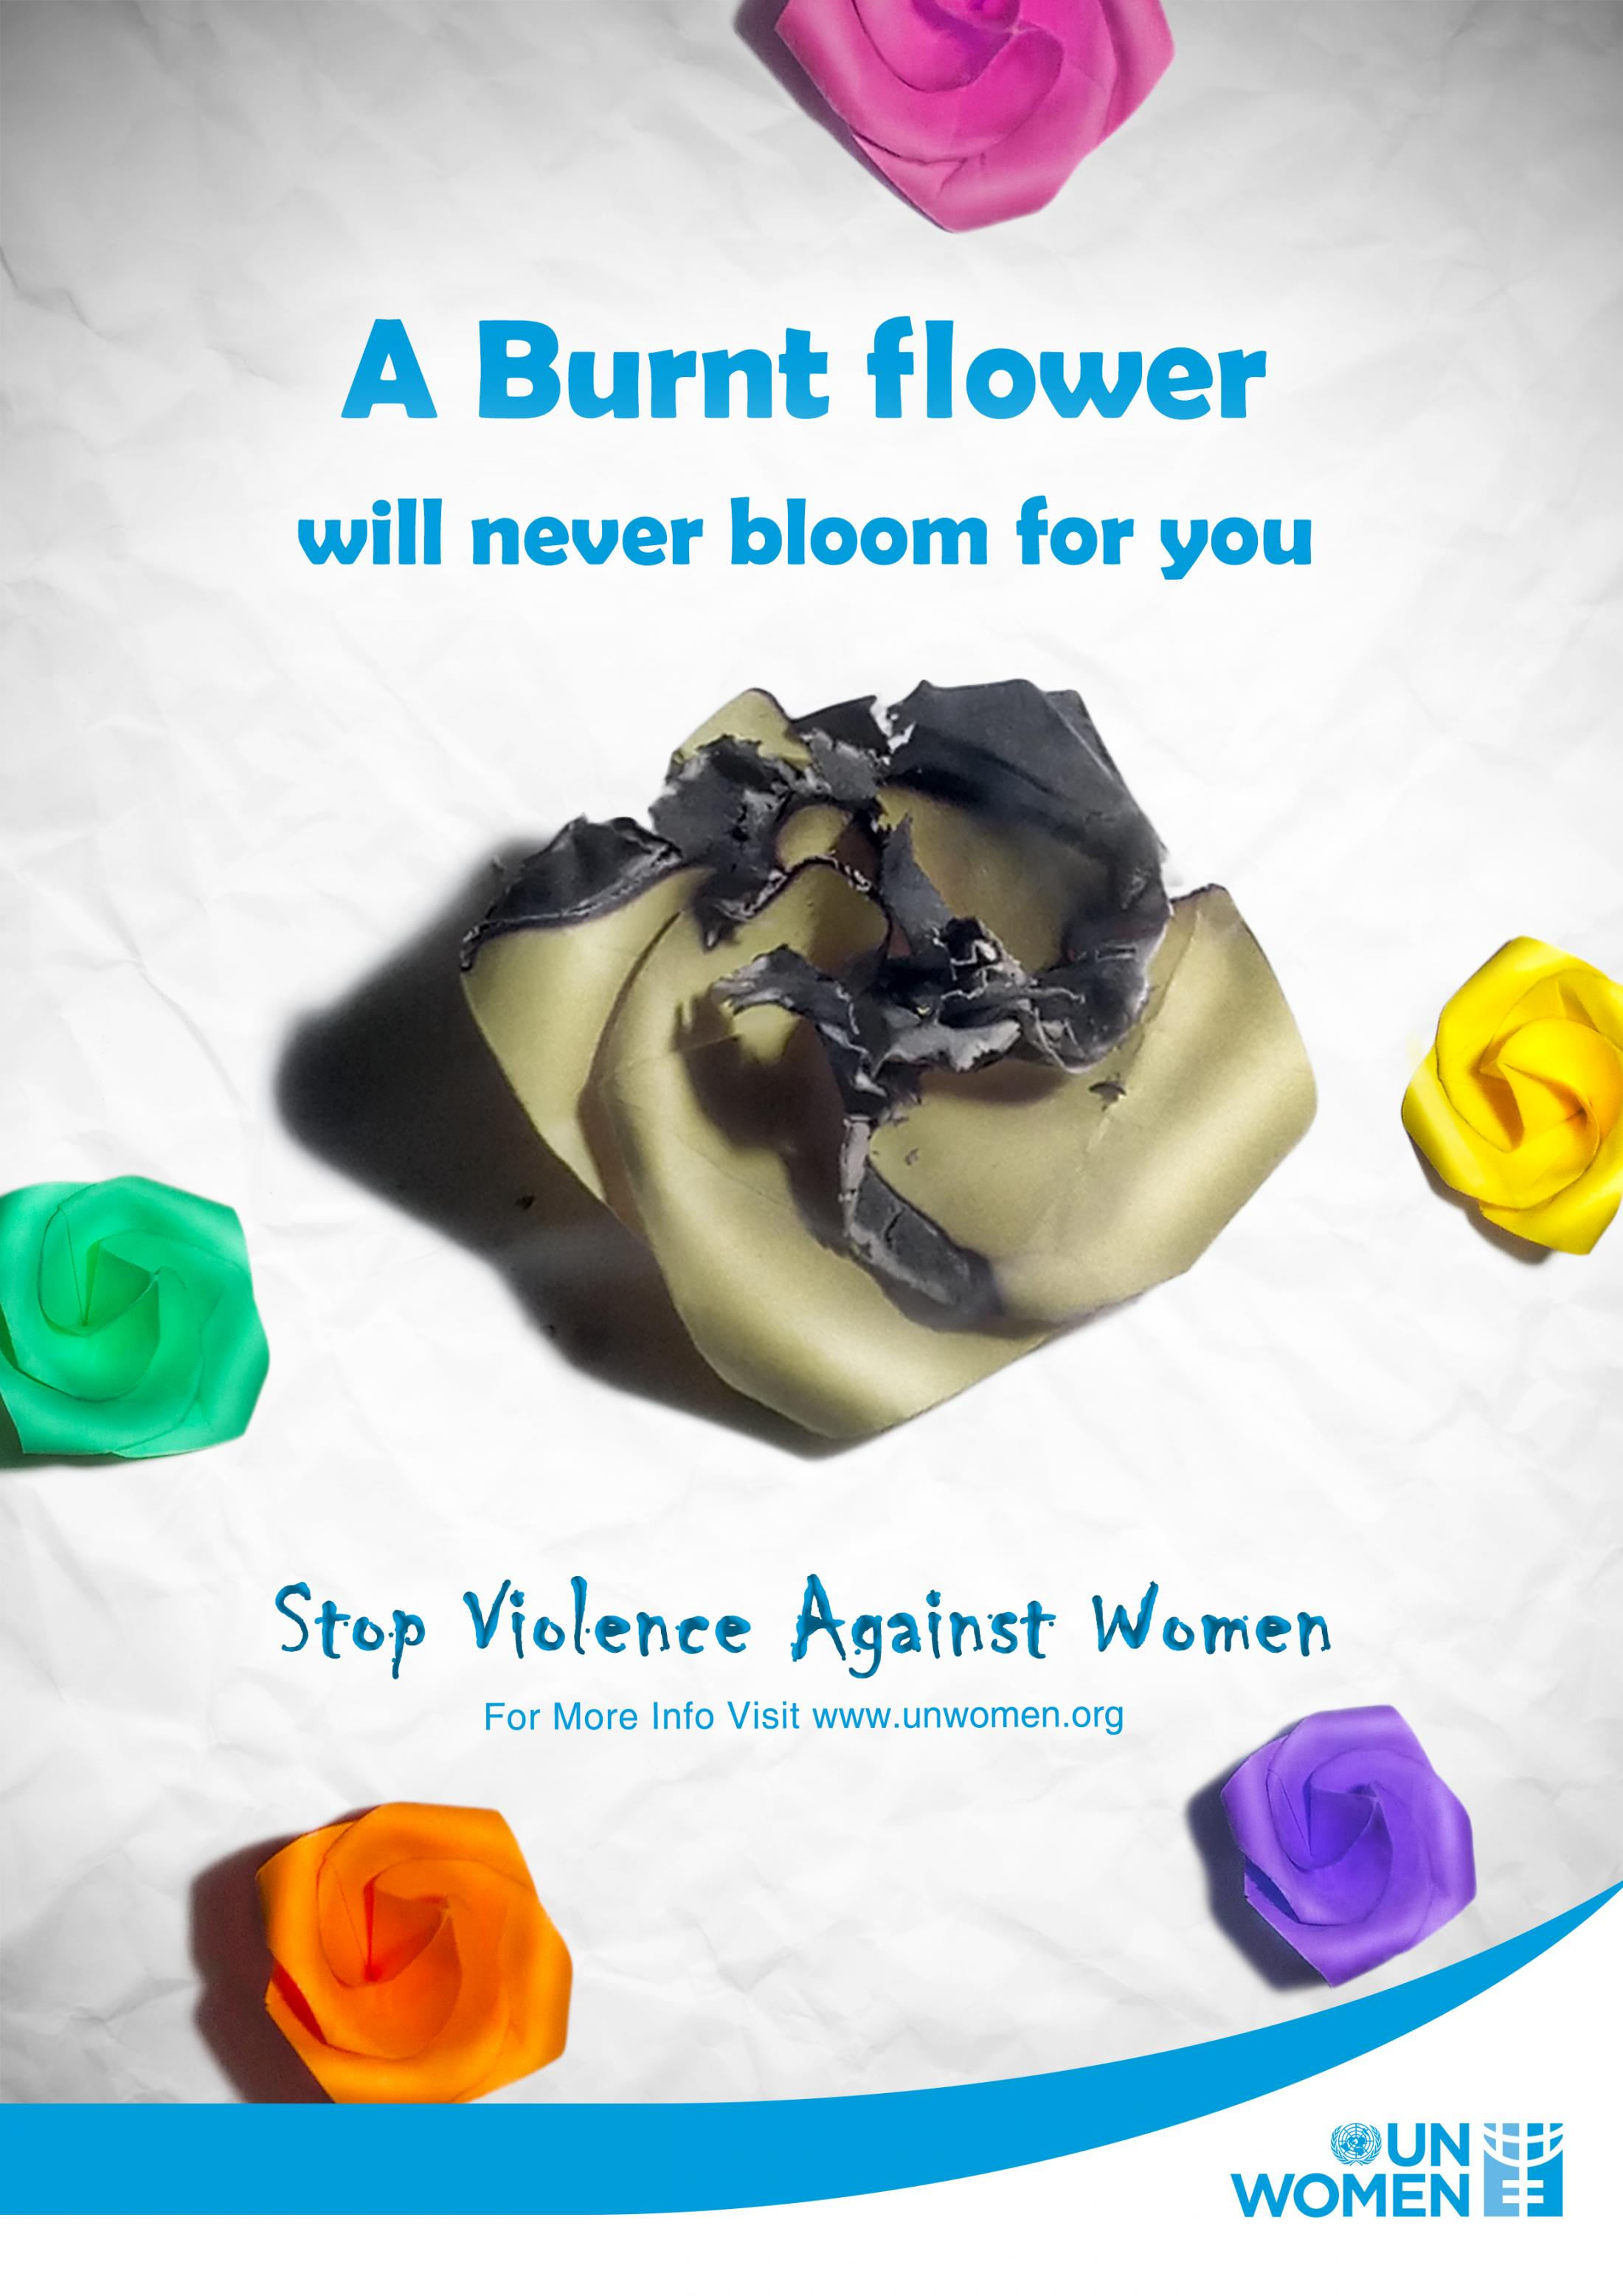 UN Women Print Ad - Never - Burnt Flower